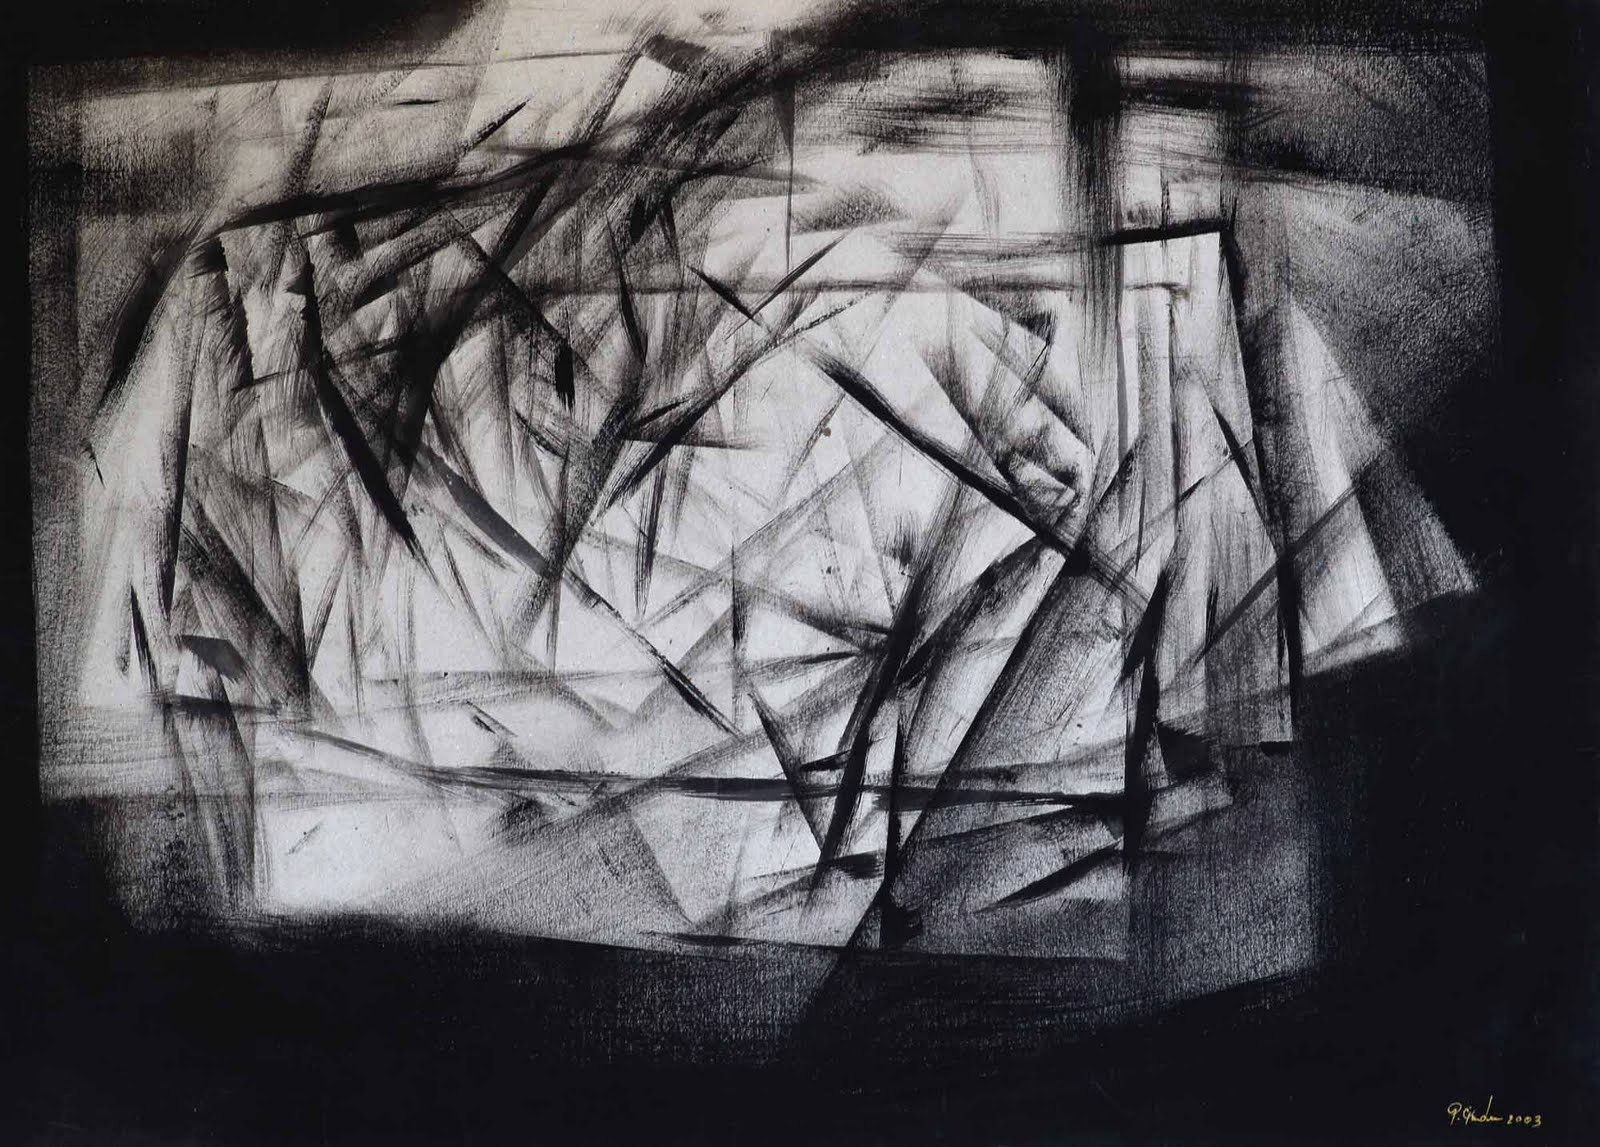 Black and White Abstract Pictures Unique Black and White Abstract Art 26 Free Hd Wallpaper